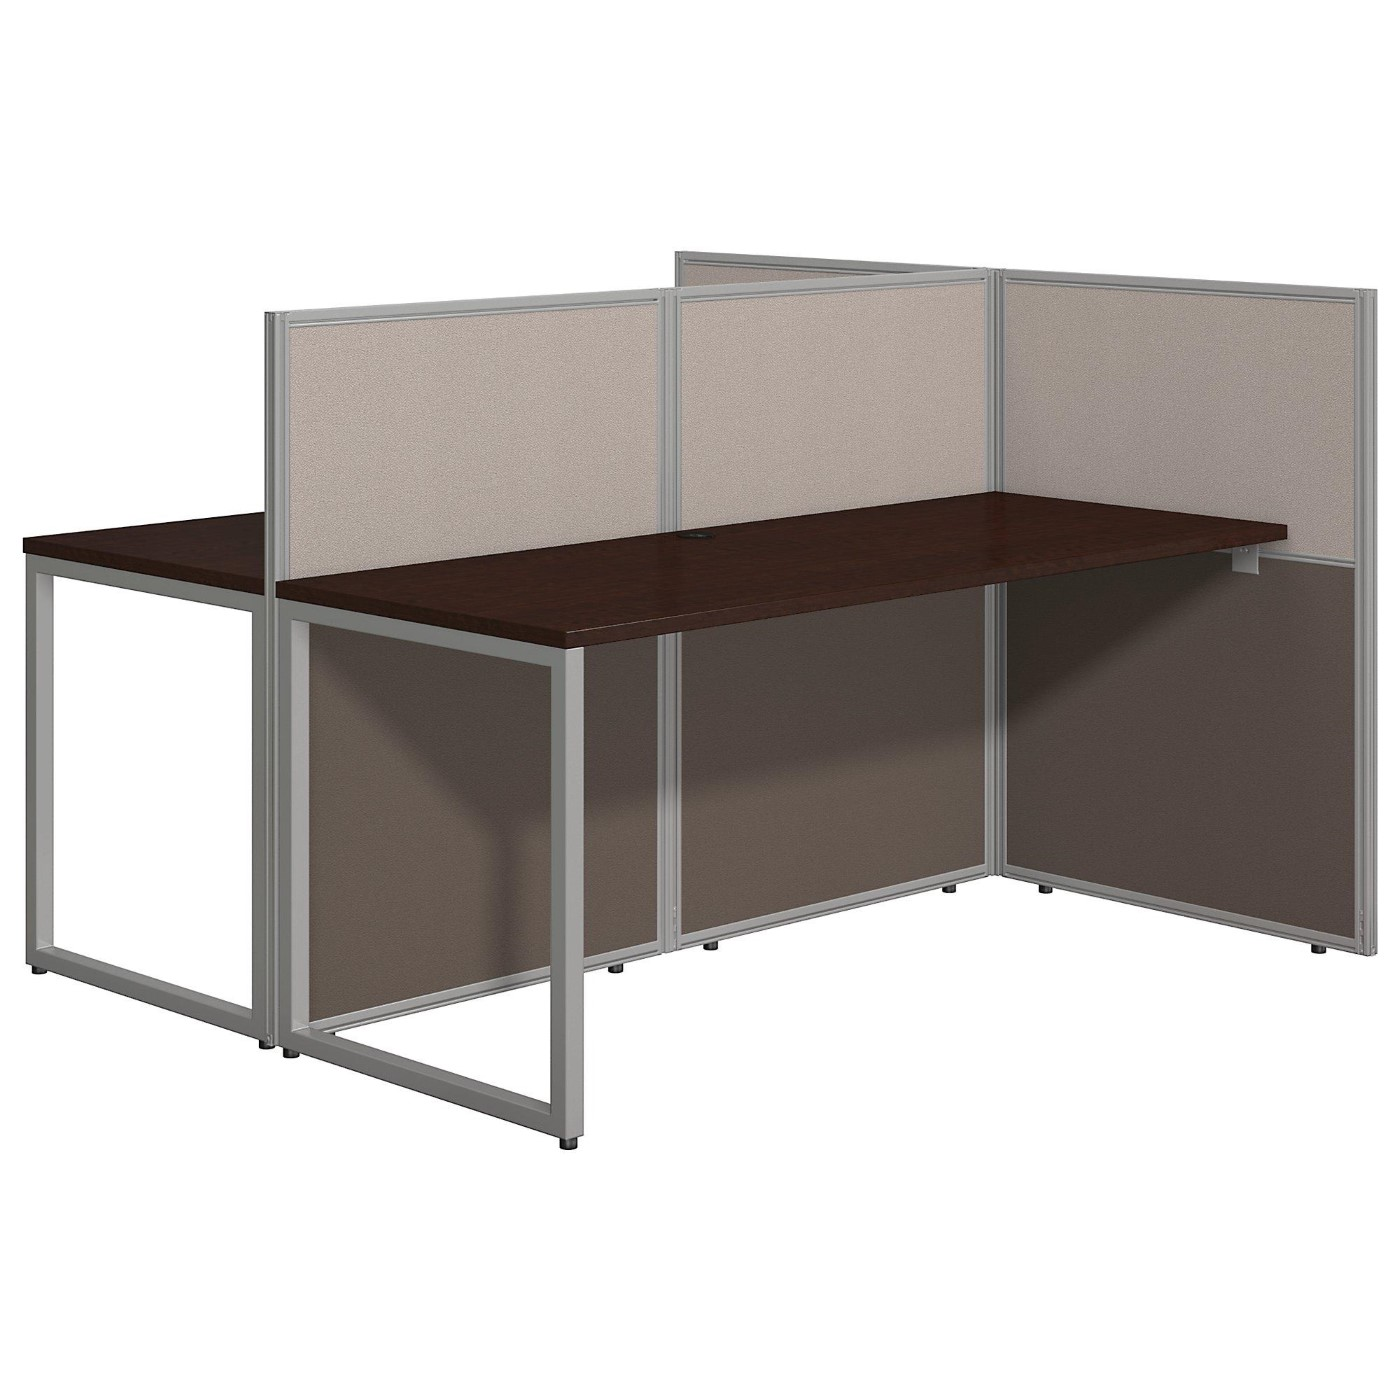 <font color=#c60><b>BUSH BUSINESS FURNITURE EASY OFFICE 60W TWO PERSON STRAIGHT DESK OPEN OFFICE. FREE SHIPPING</font></b></font></b>